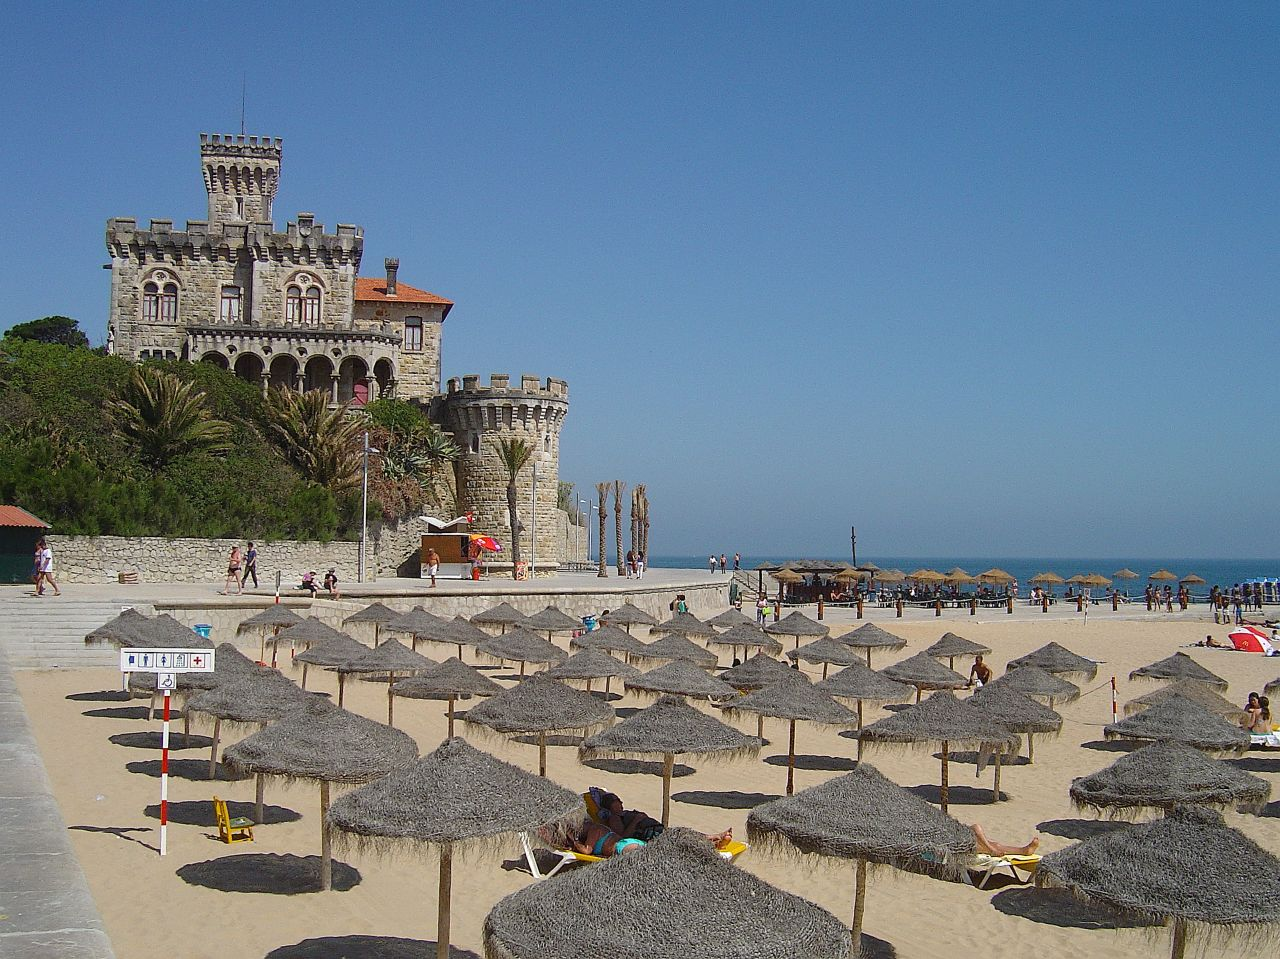 Tamariz beach © Portuguese_eyes / Wikimedia Commons